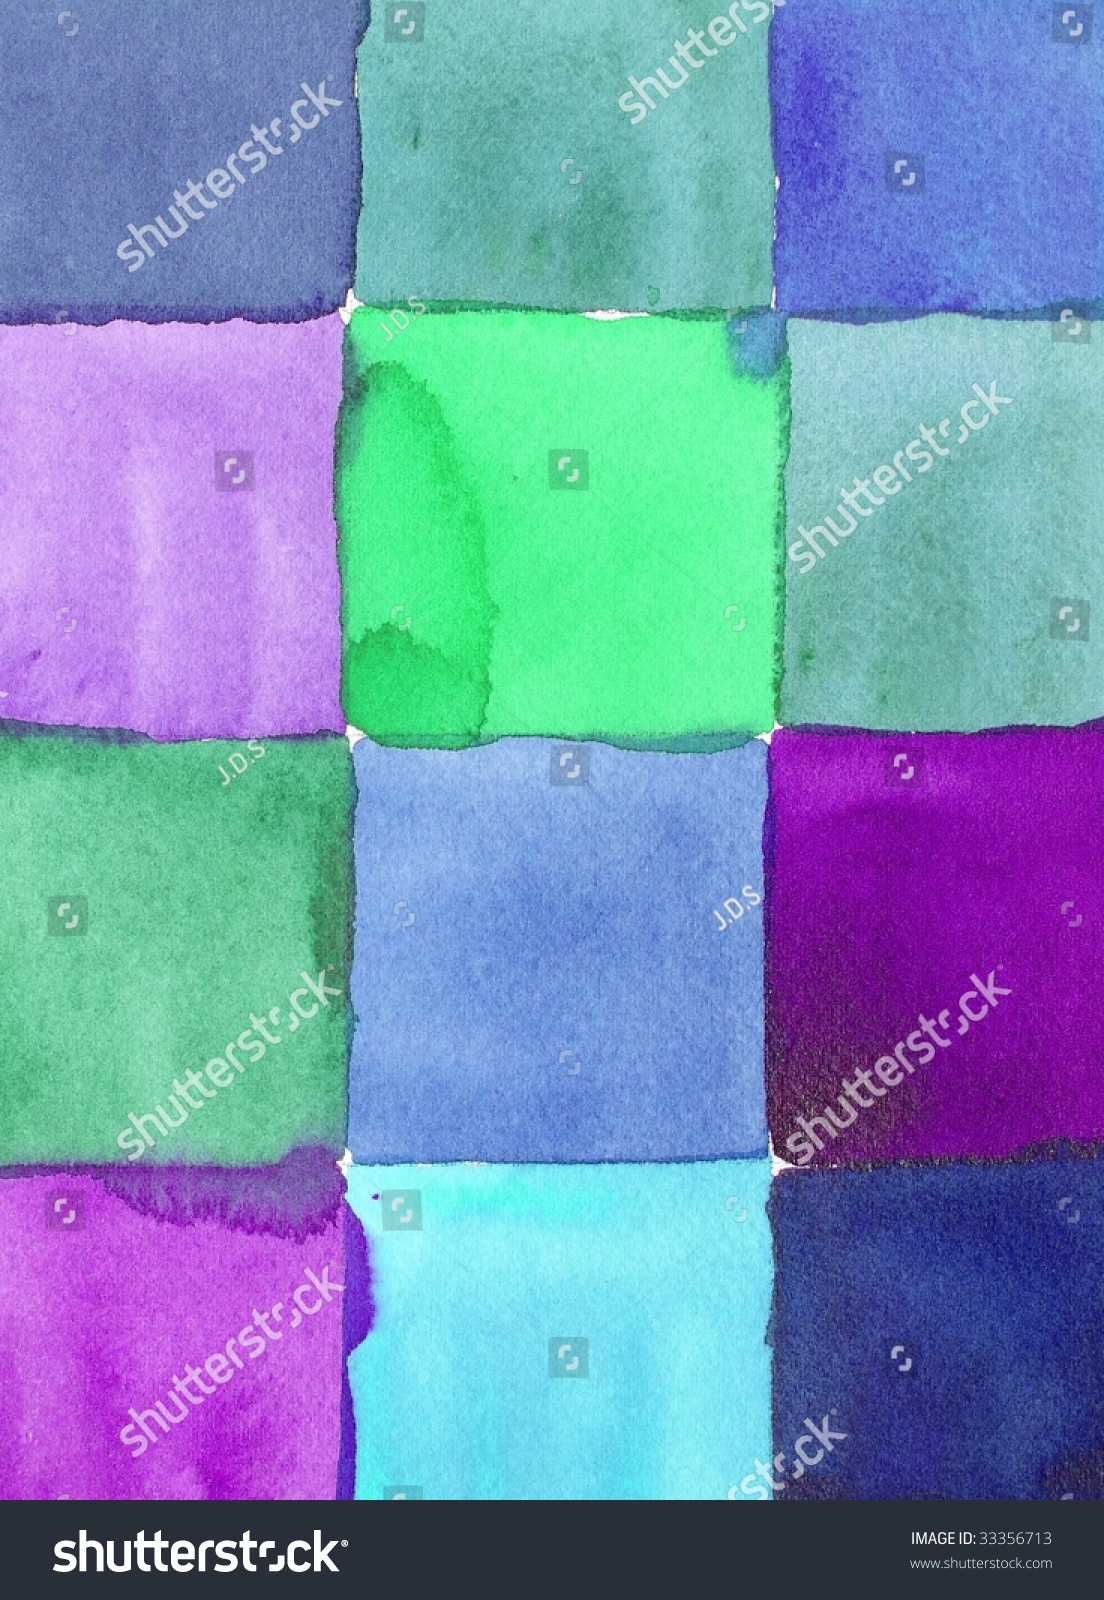 Blue green purple paint squares background stock photo for Blue green purple room